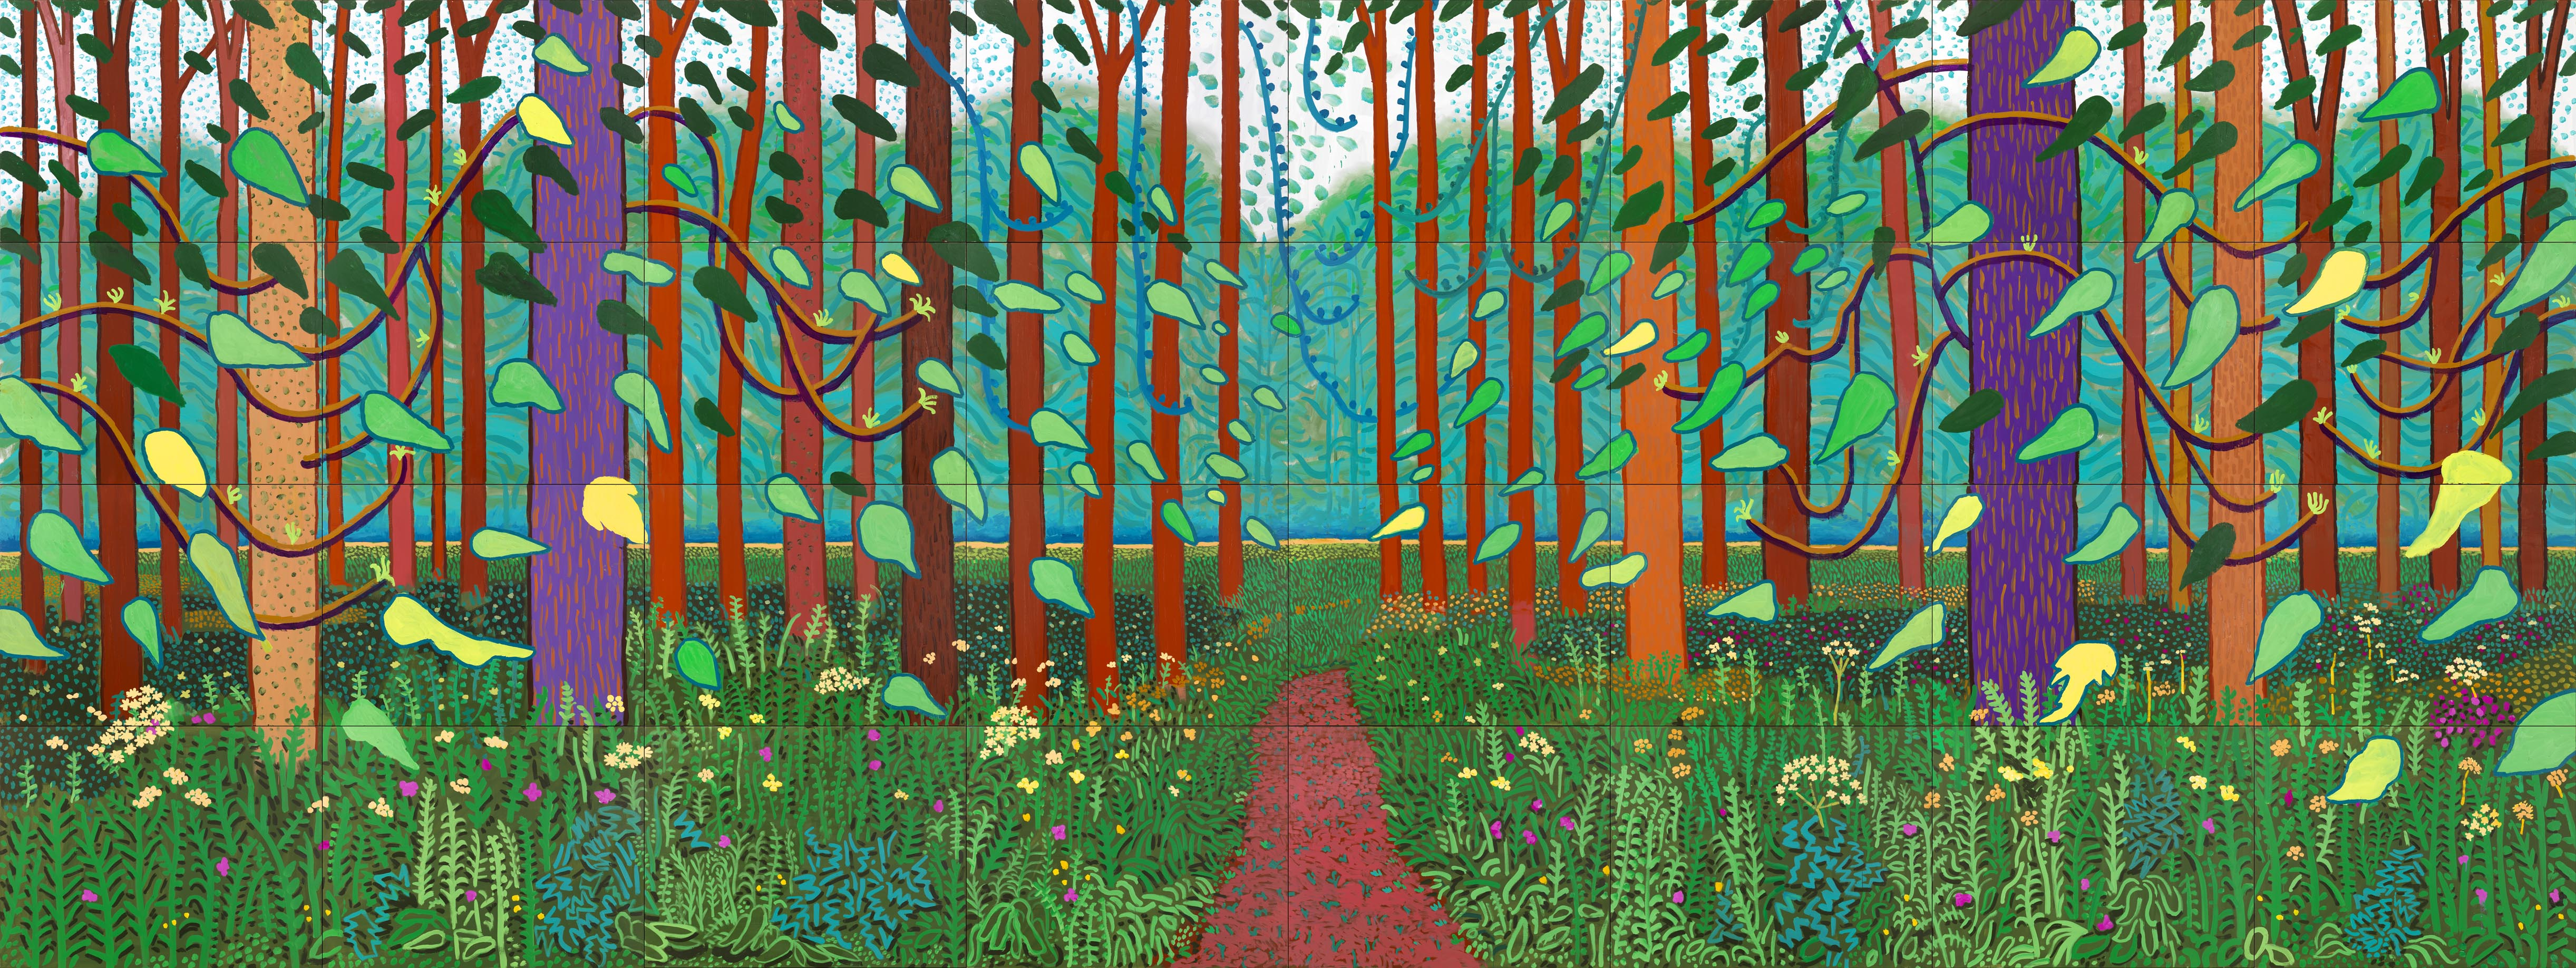 """The Arrival of spring in Woldgate, East Yorkshire"", (366 cm x 975 cm), David Hockney"